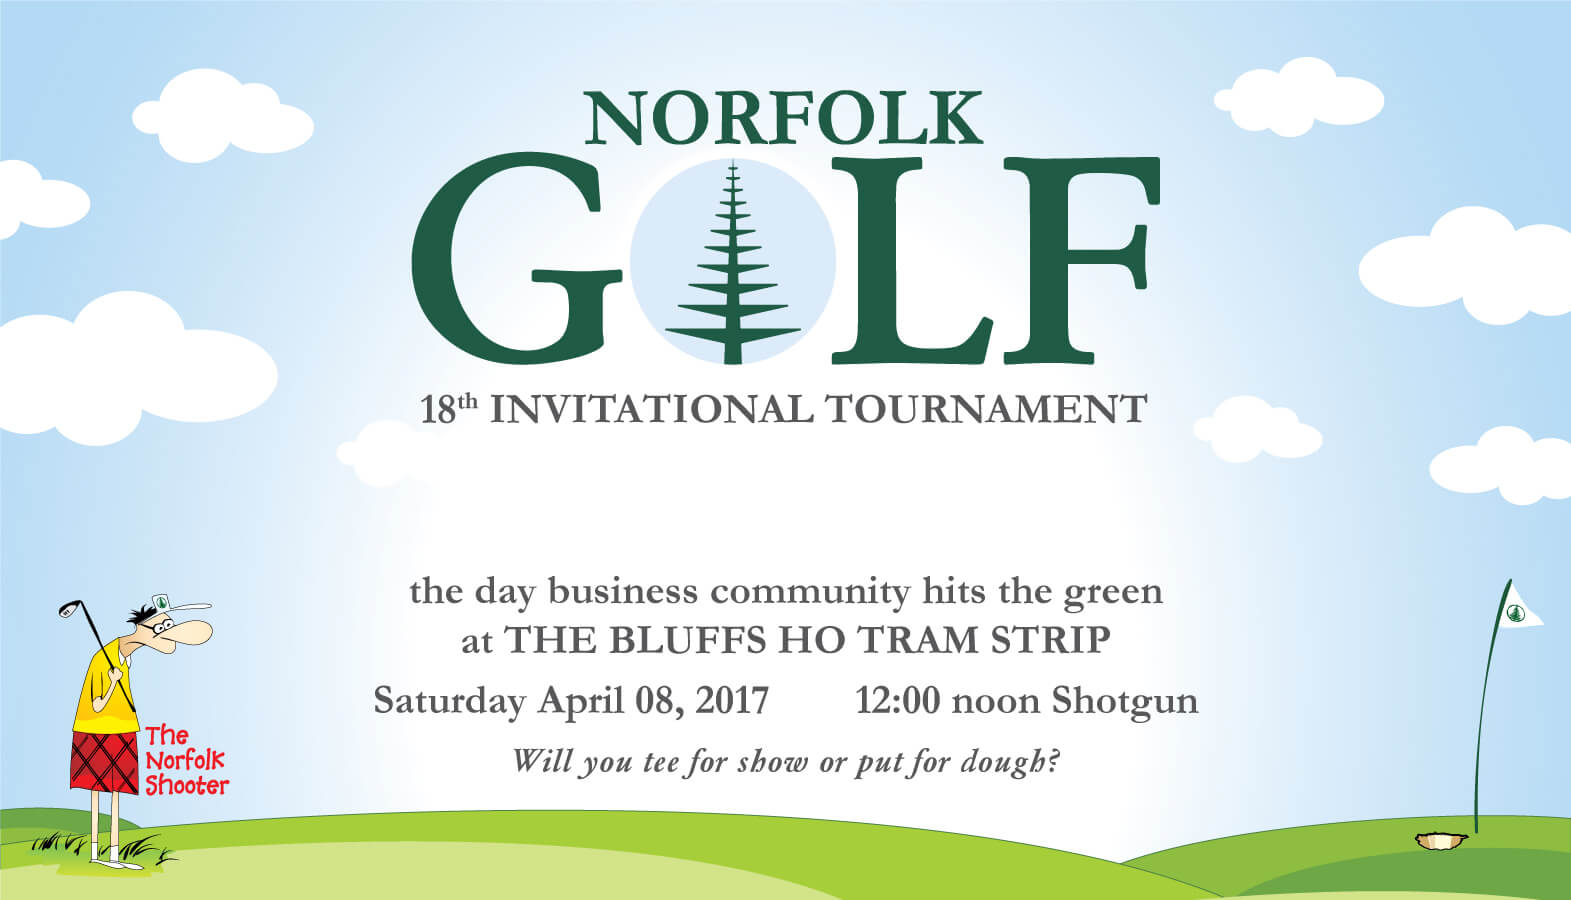 The 18th Norfolk Invitational Golf Tournament in 2017